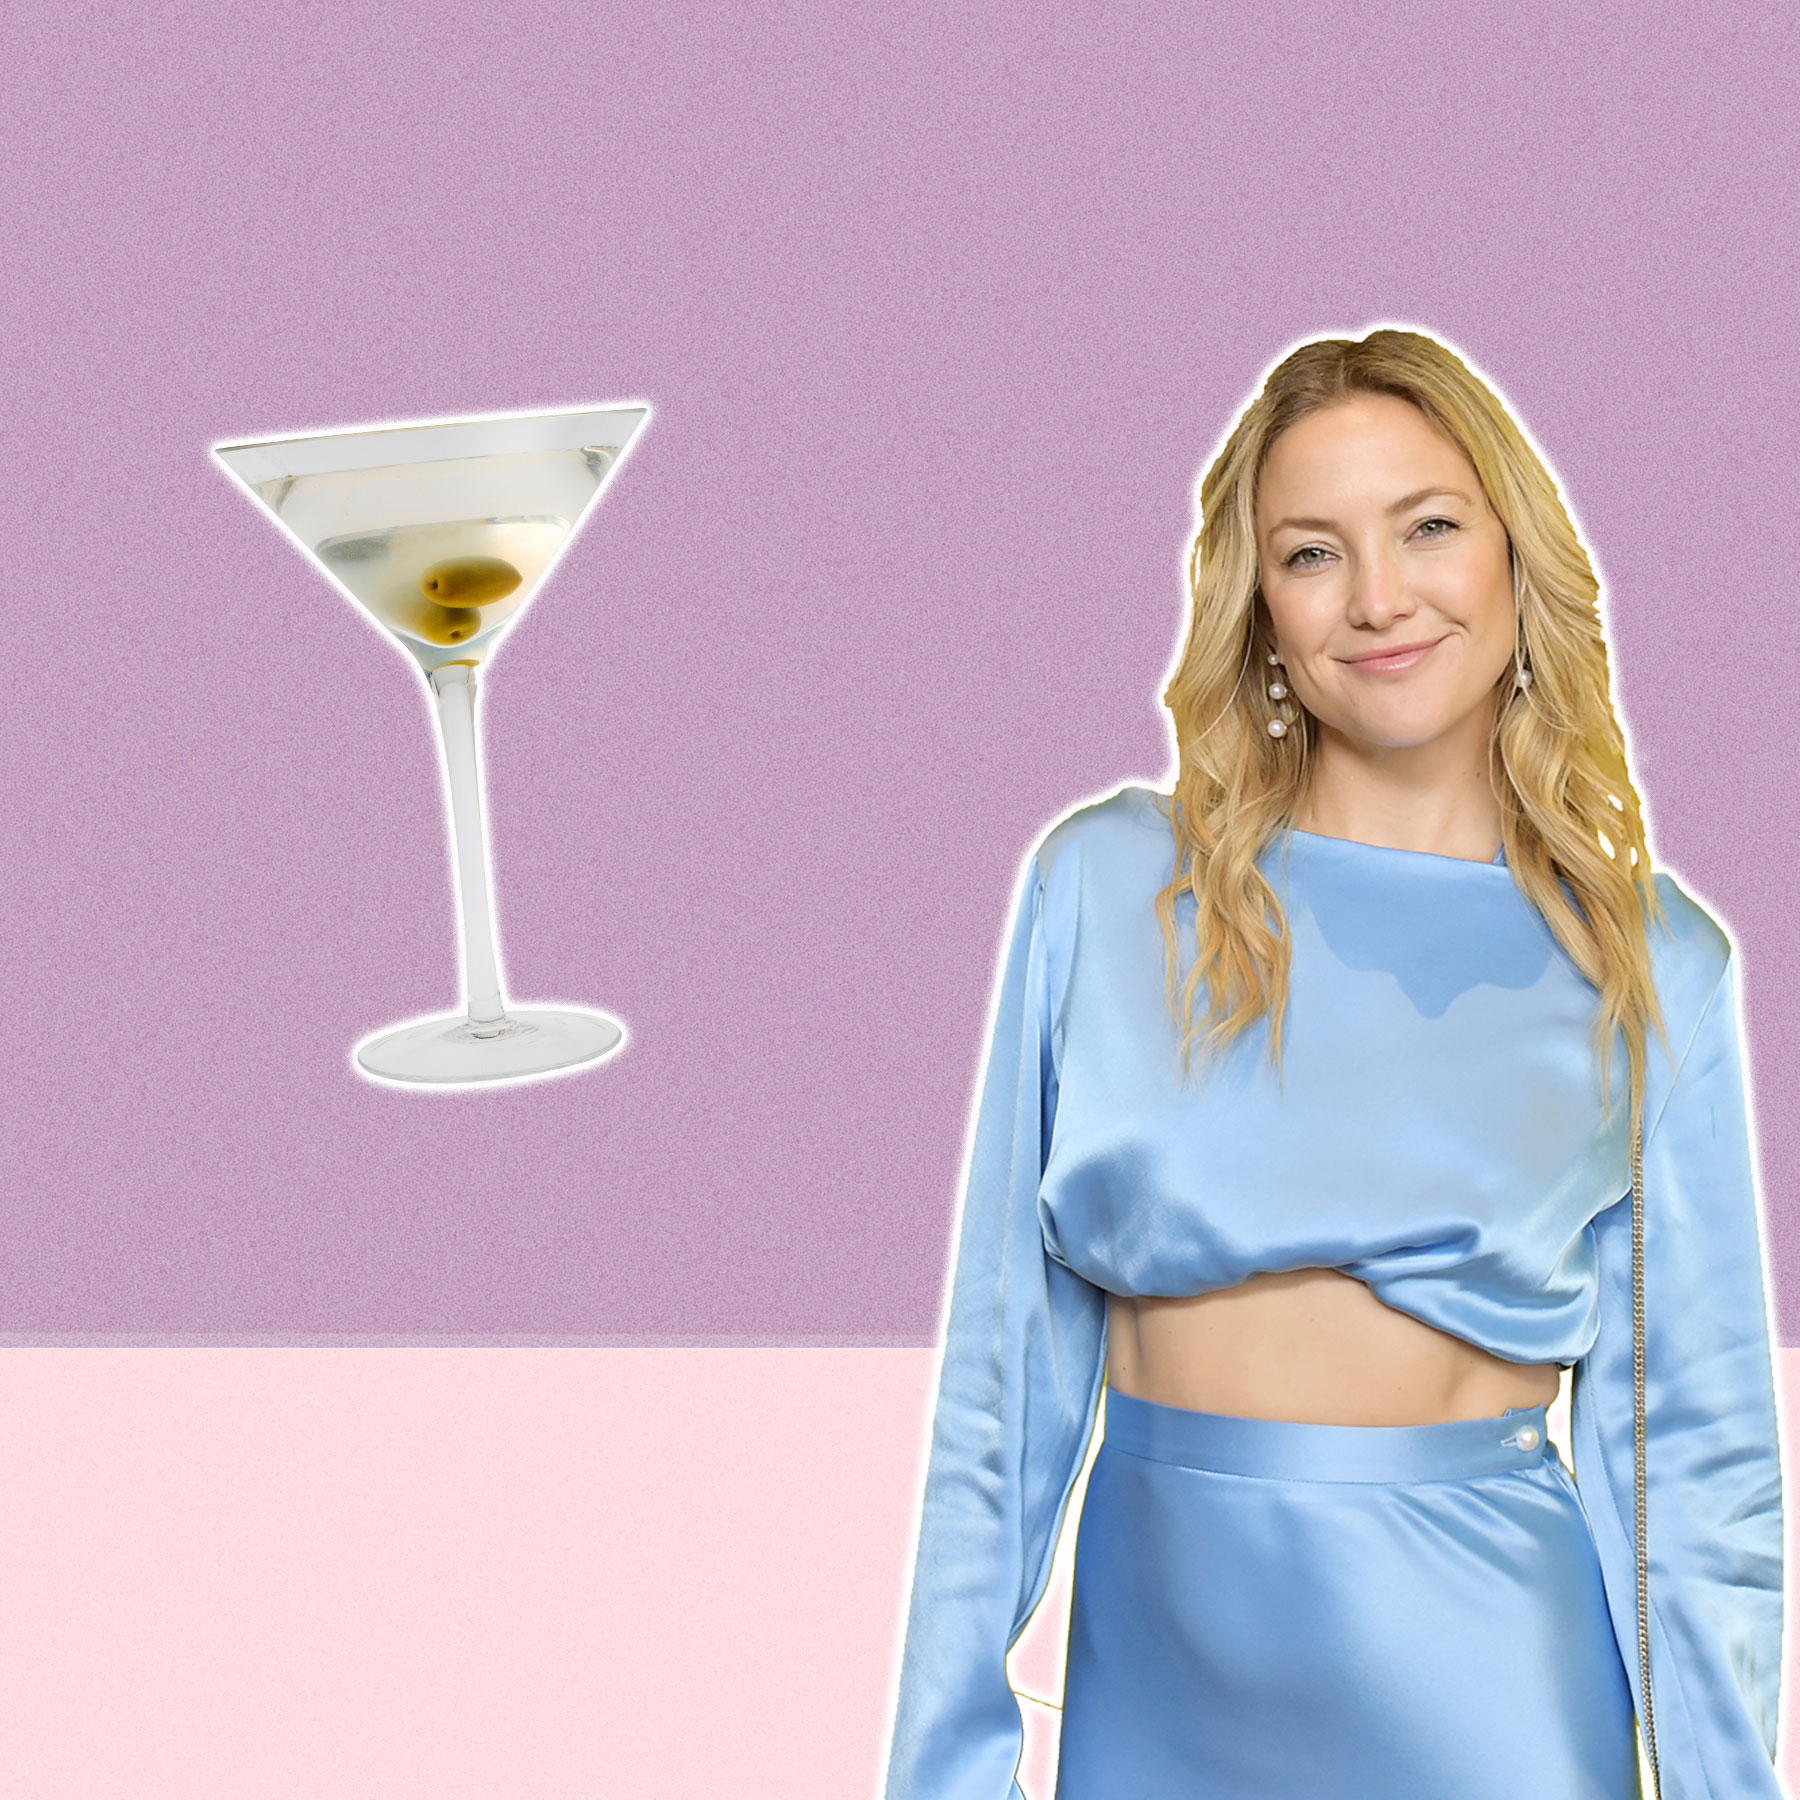 https://www.eatingwell.com/article/7871332/crashing-kate-hudson-and-martha-stewart-s-martini-making-party-is-about-to-make-your-day/kate-hudson-martini/